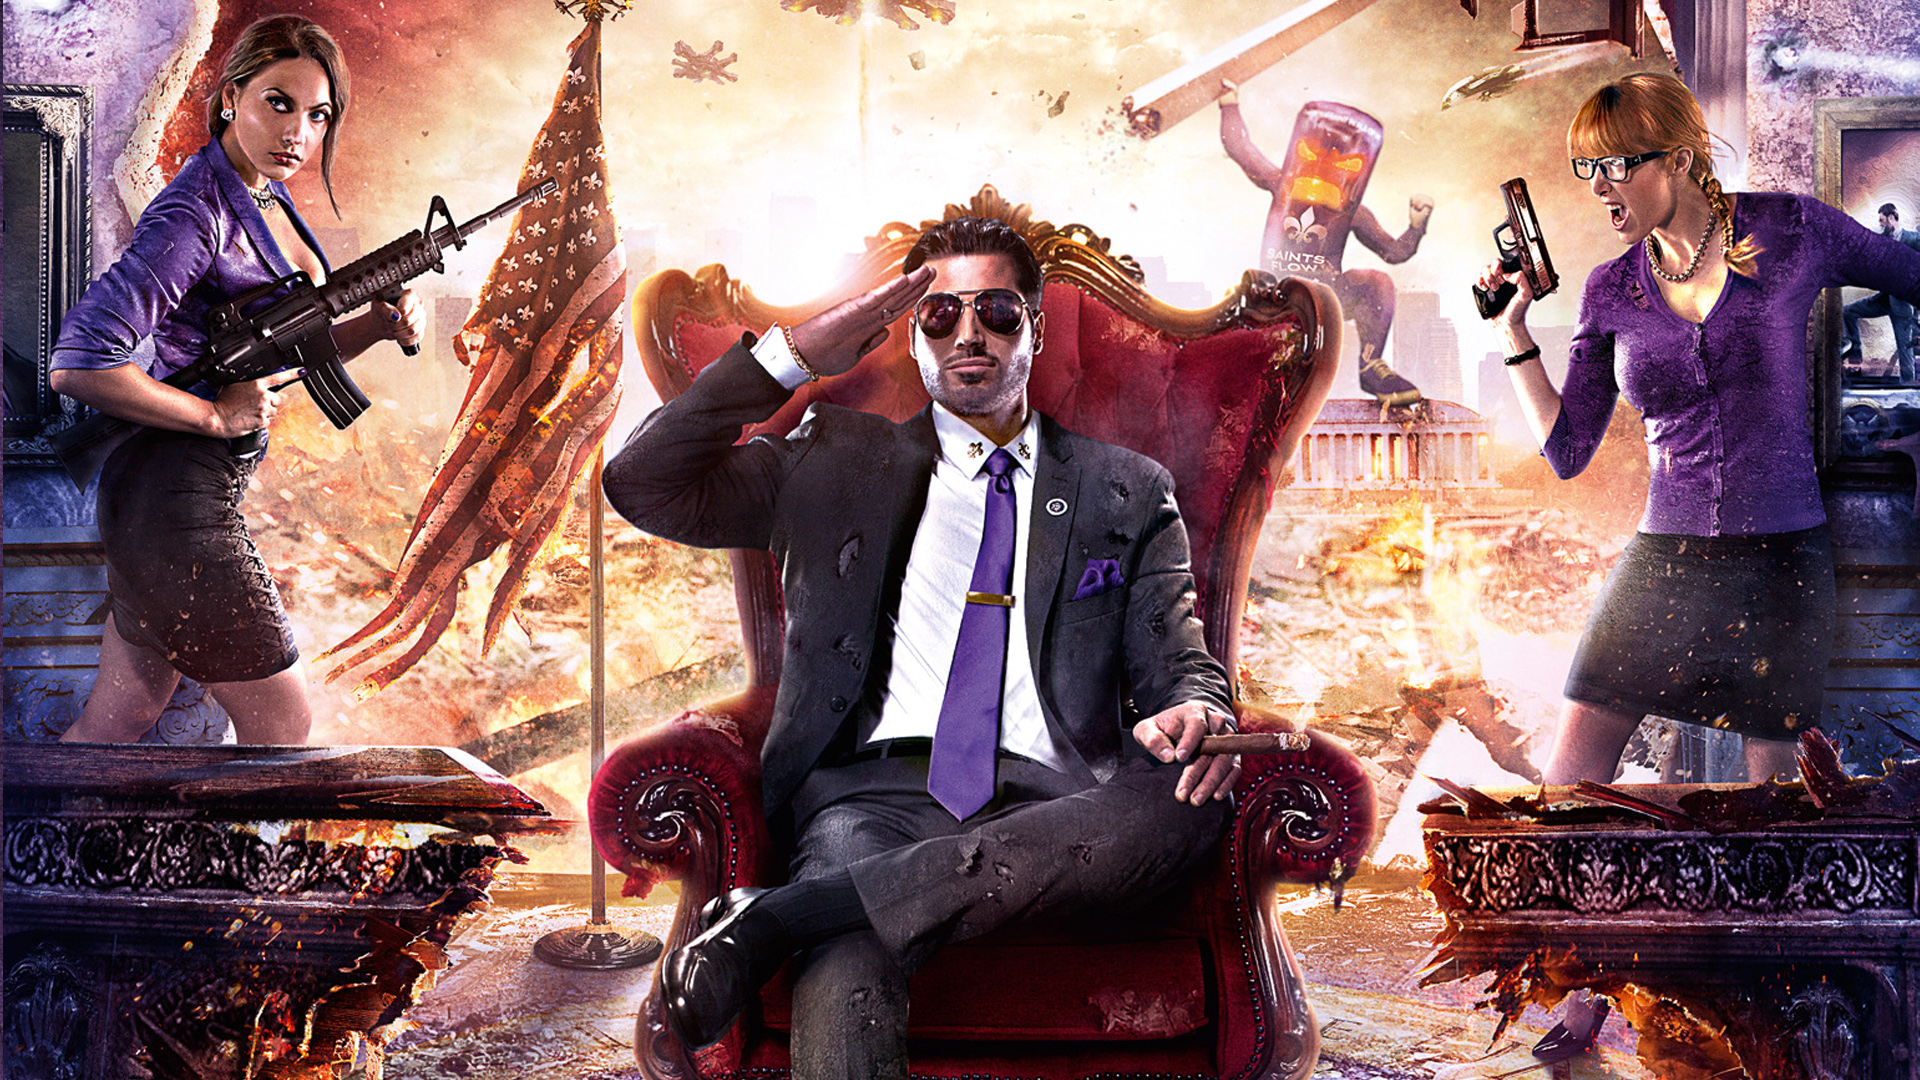 """Saints Row IV"" Available Now on Xbox One's Backwards Compatibility - With Still More to Come"